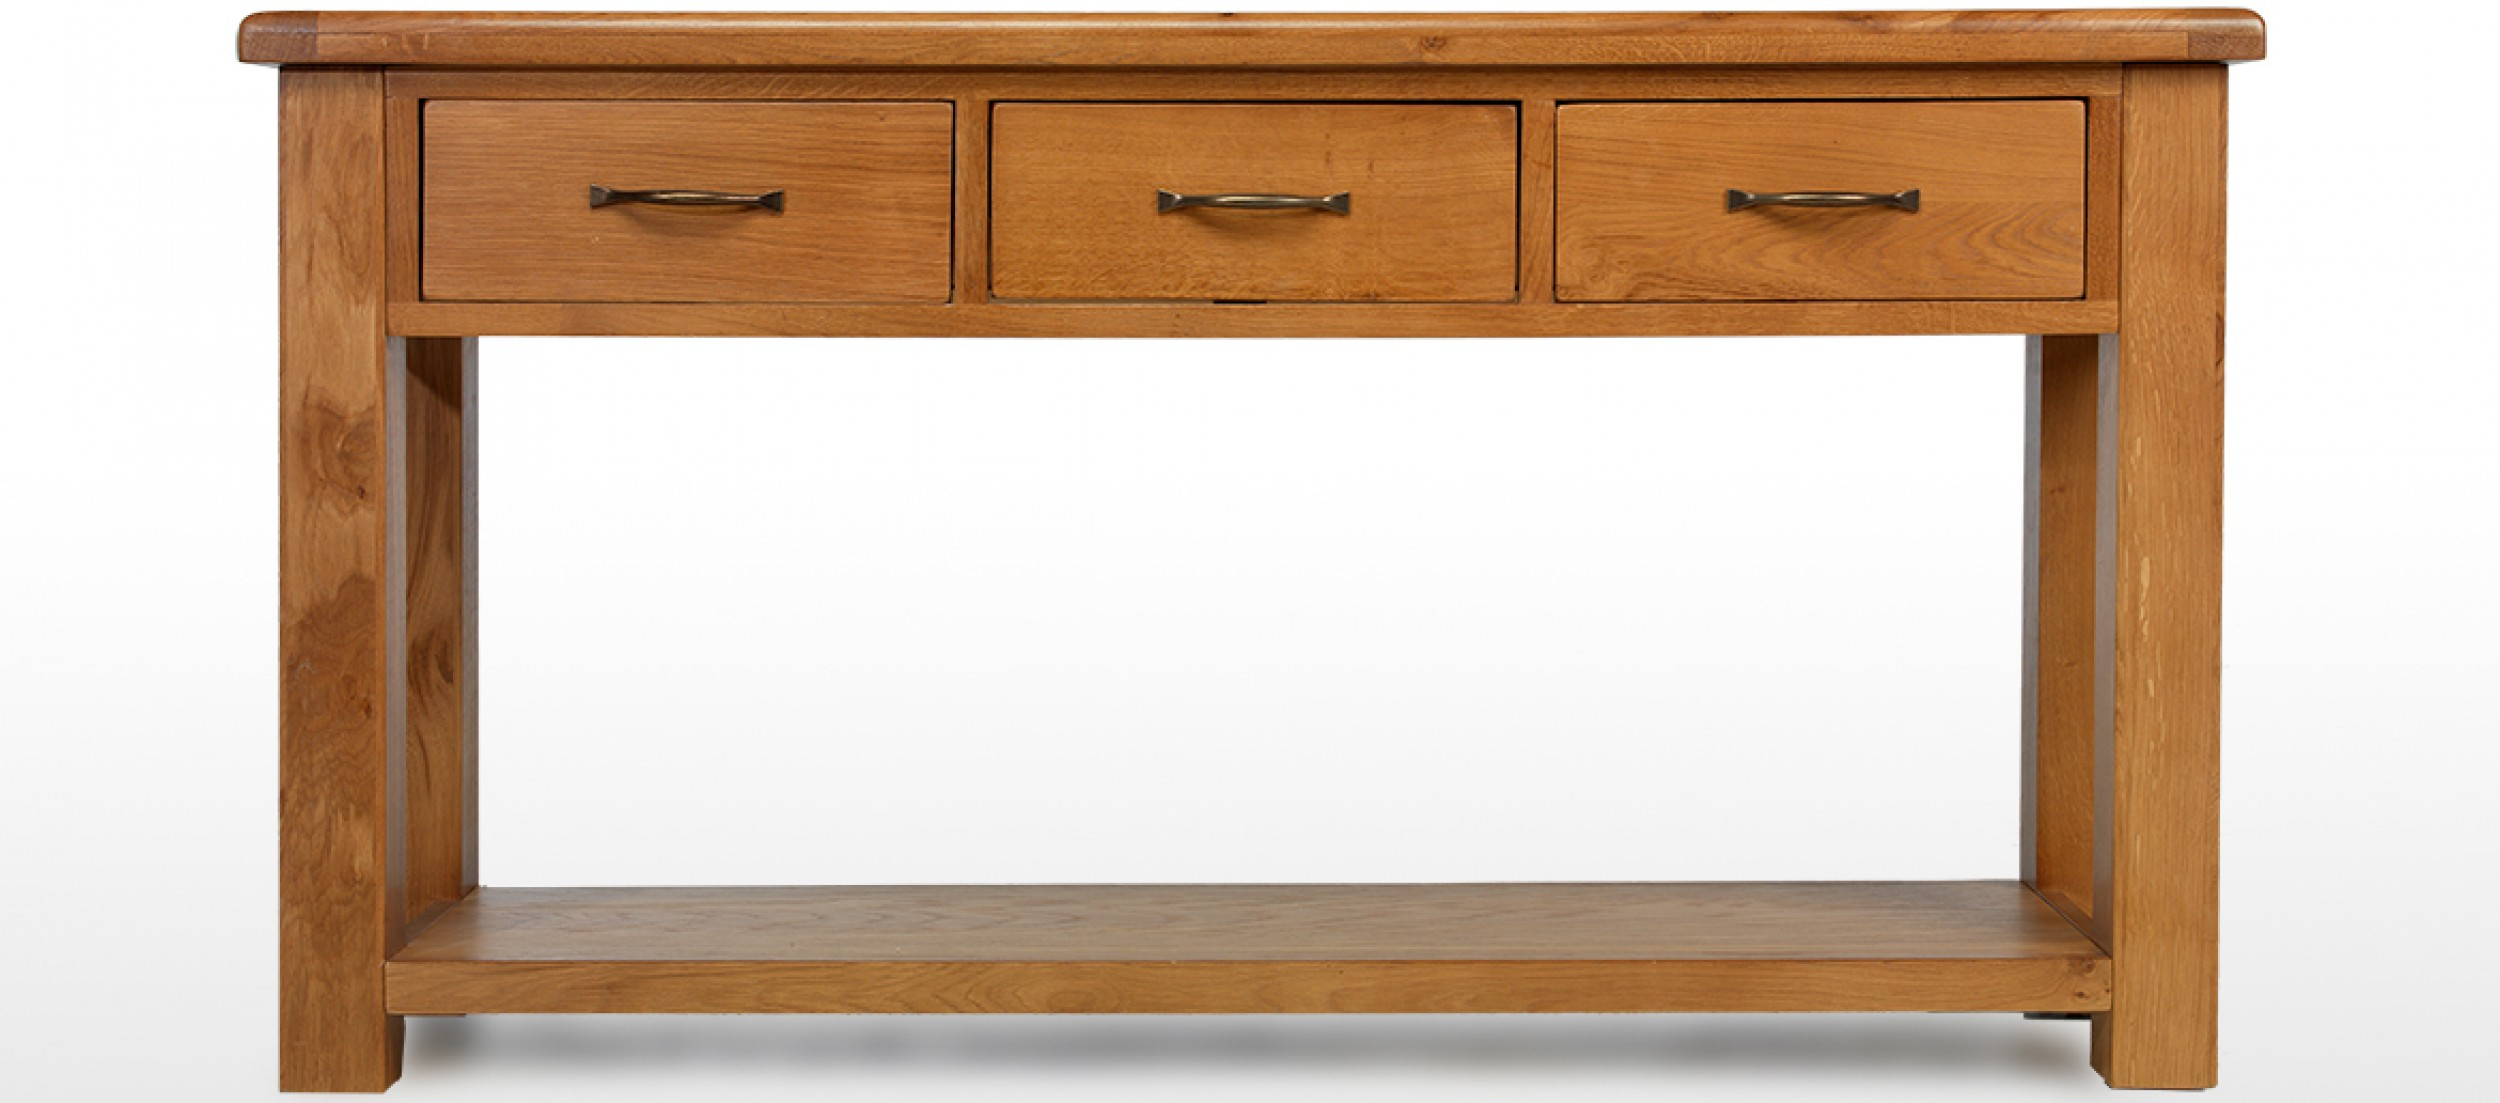 Barham oak large console table quercus living for Sofa table large